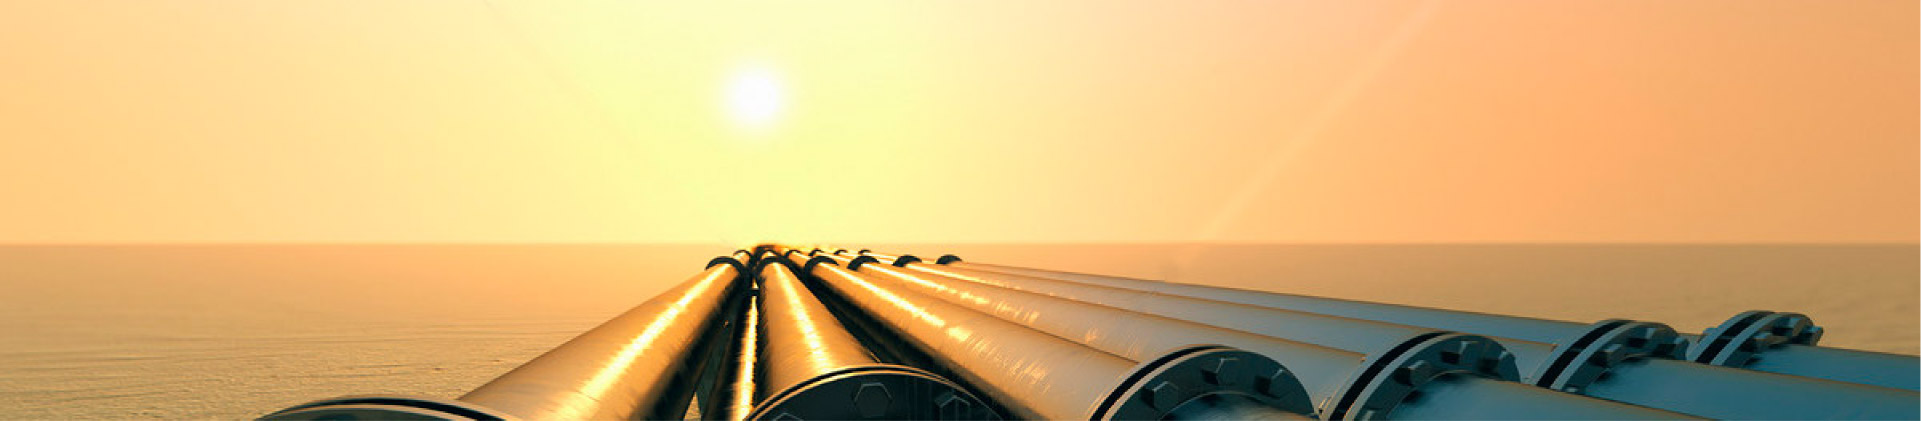 U.S. Oil Export Surge Means OPEC